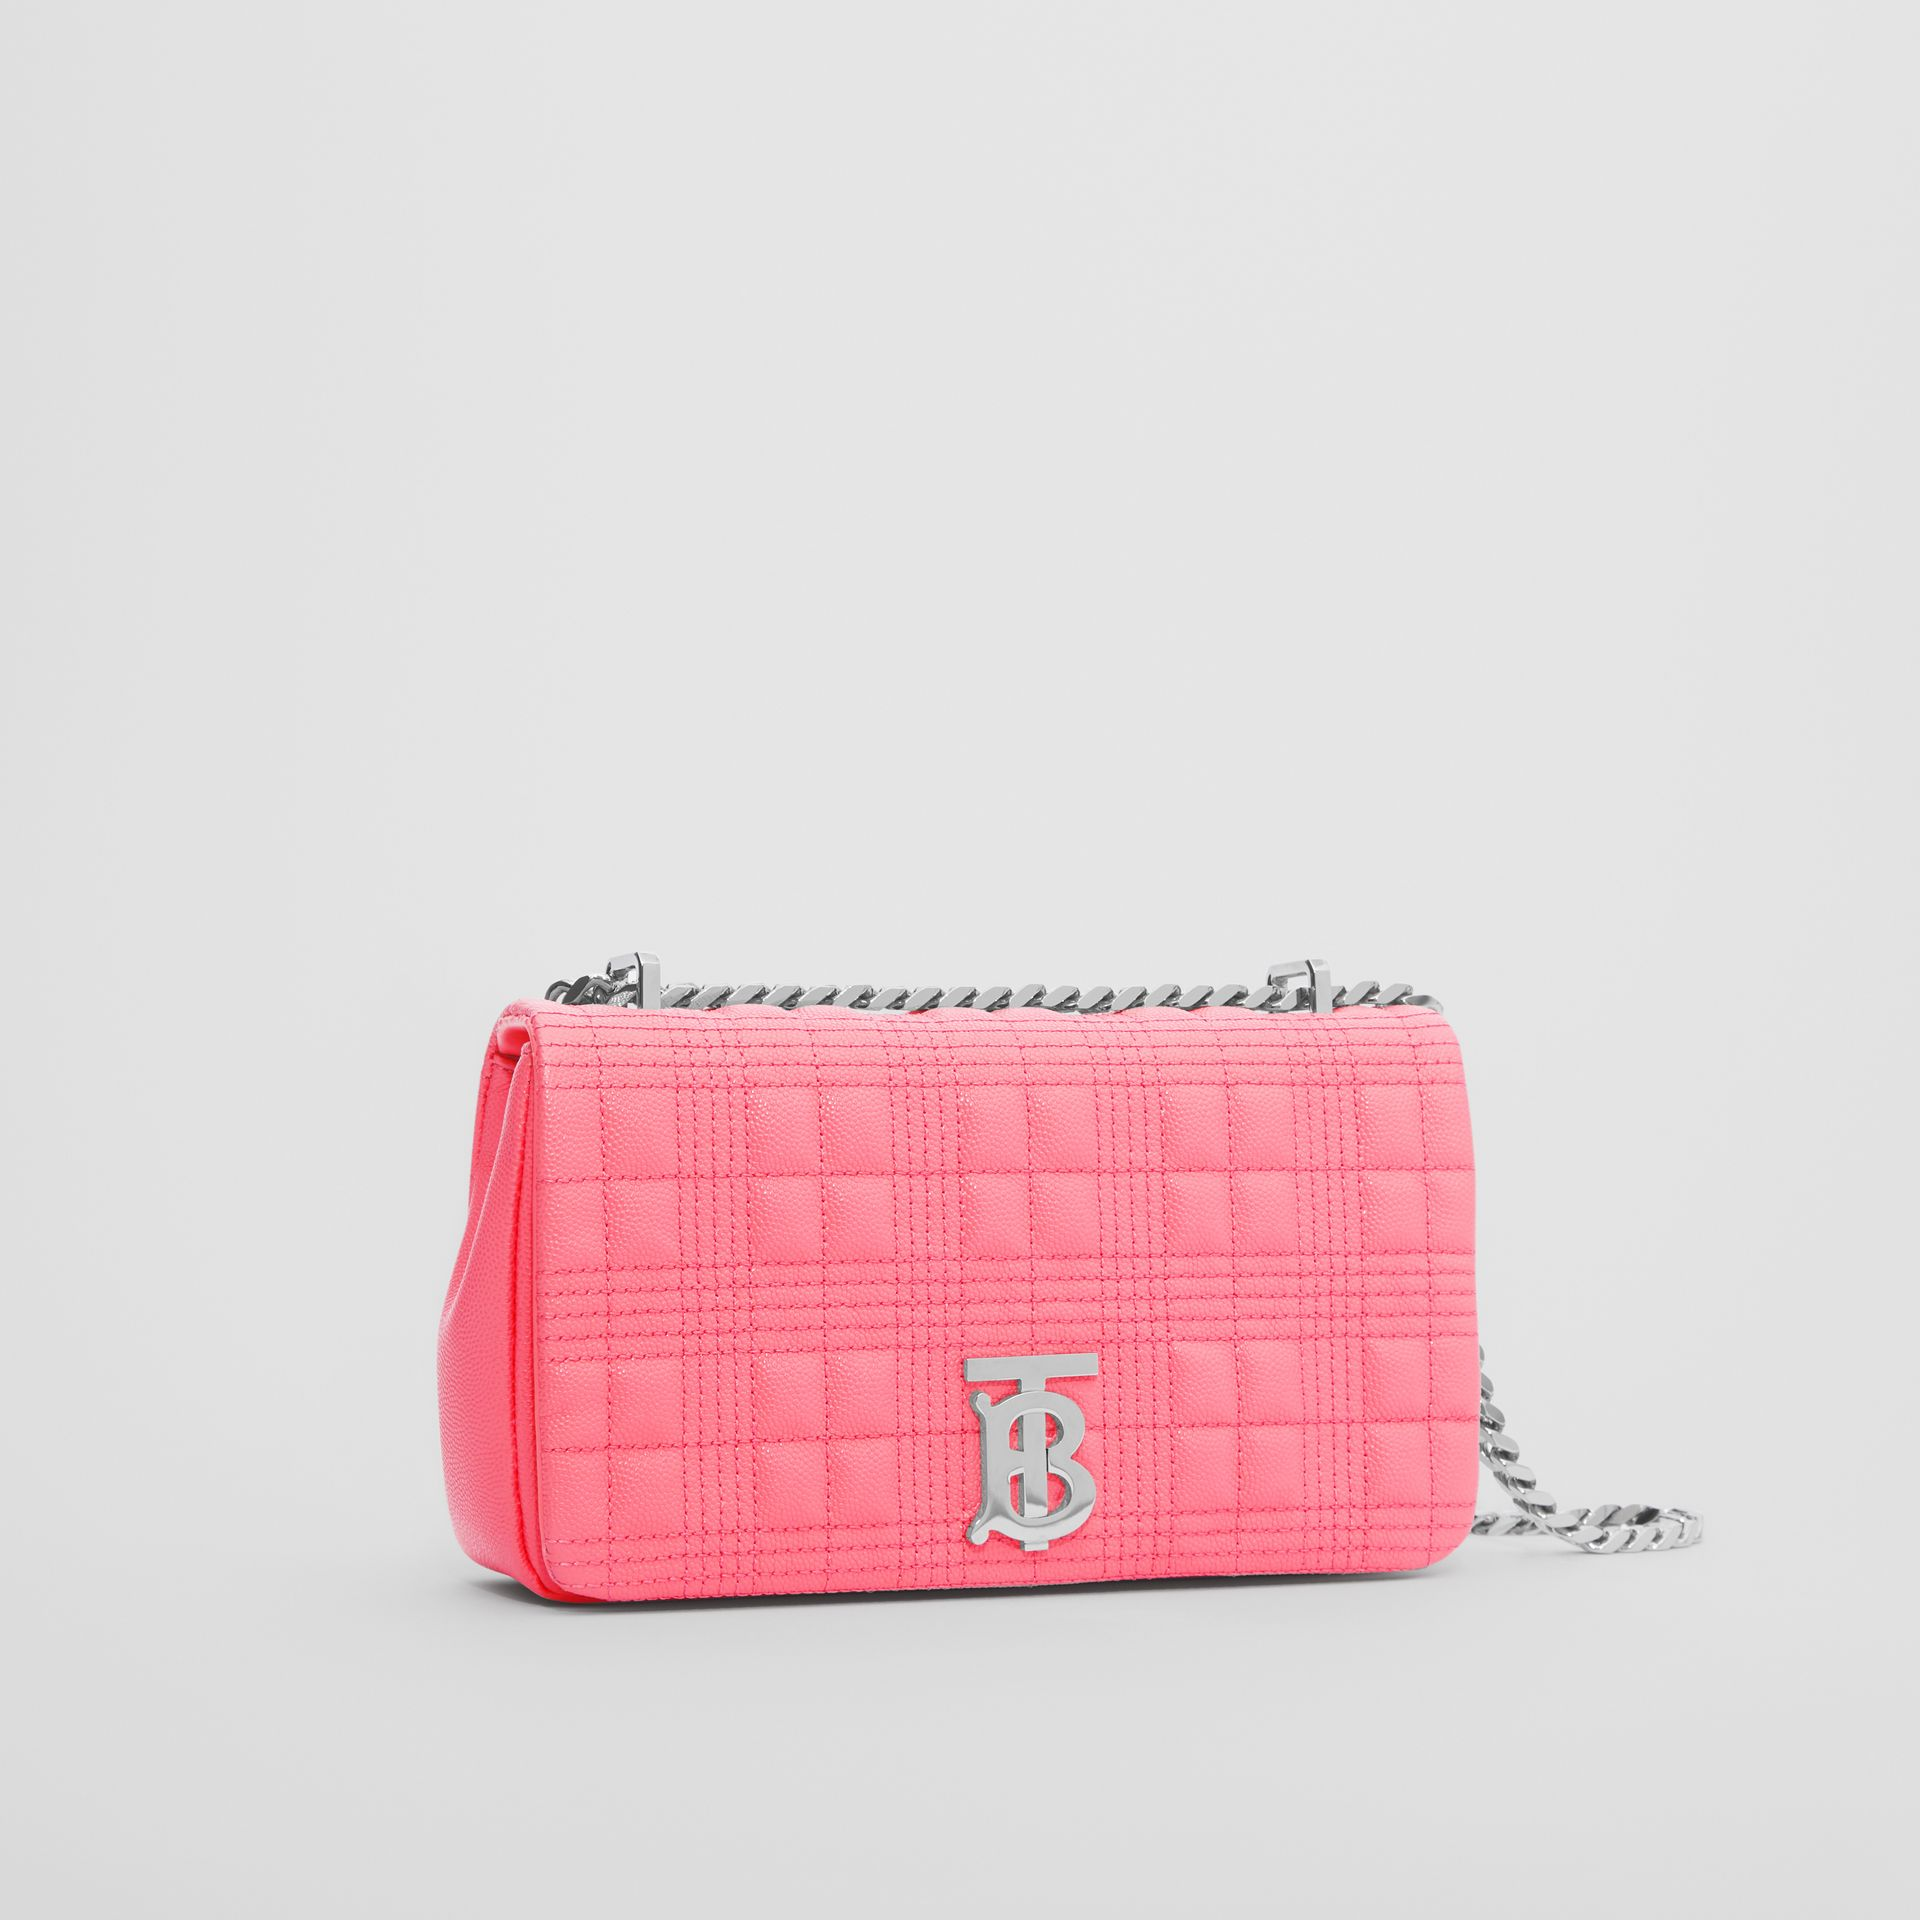 Small Quilted Grainy Leather Lola Bag in Candy Floss - Women | Burberry - gallery image 5